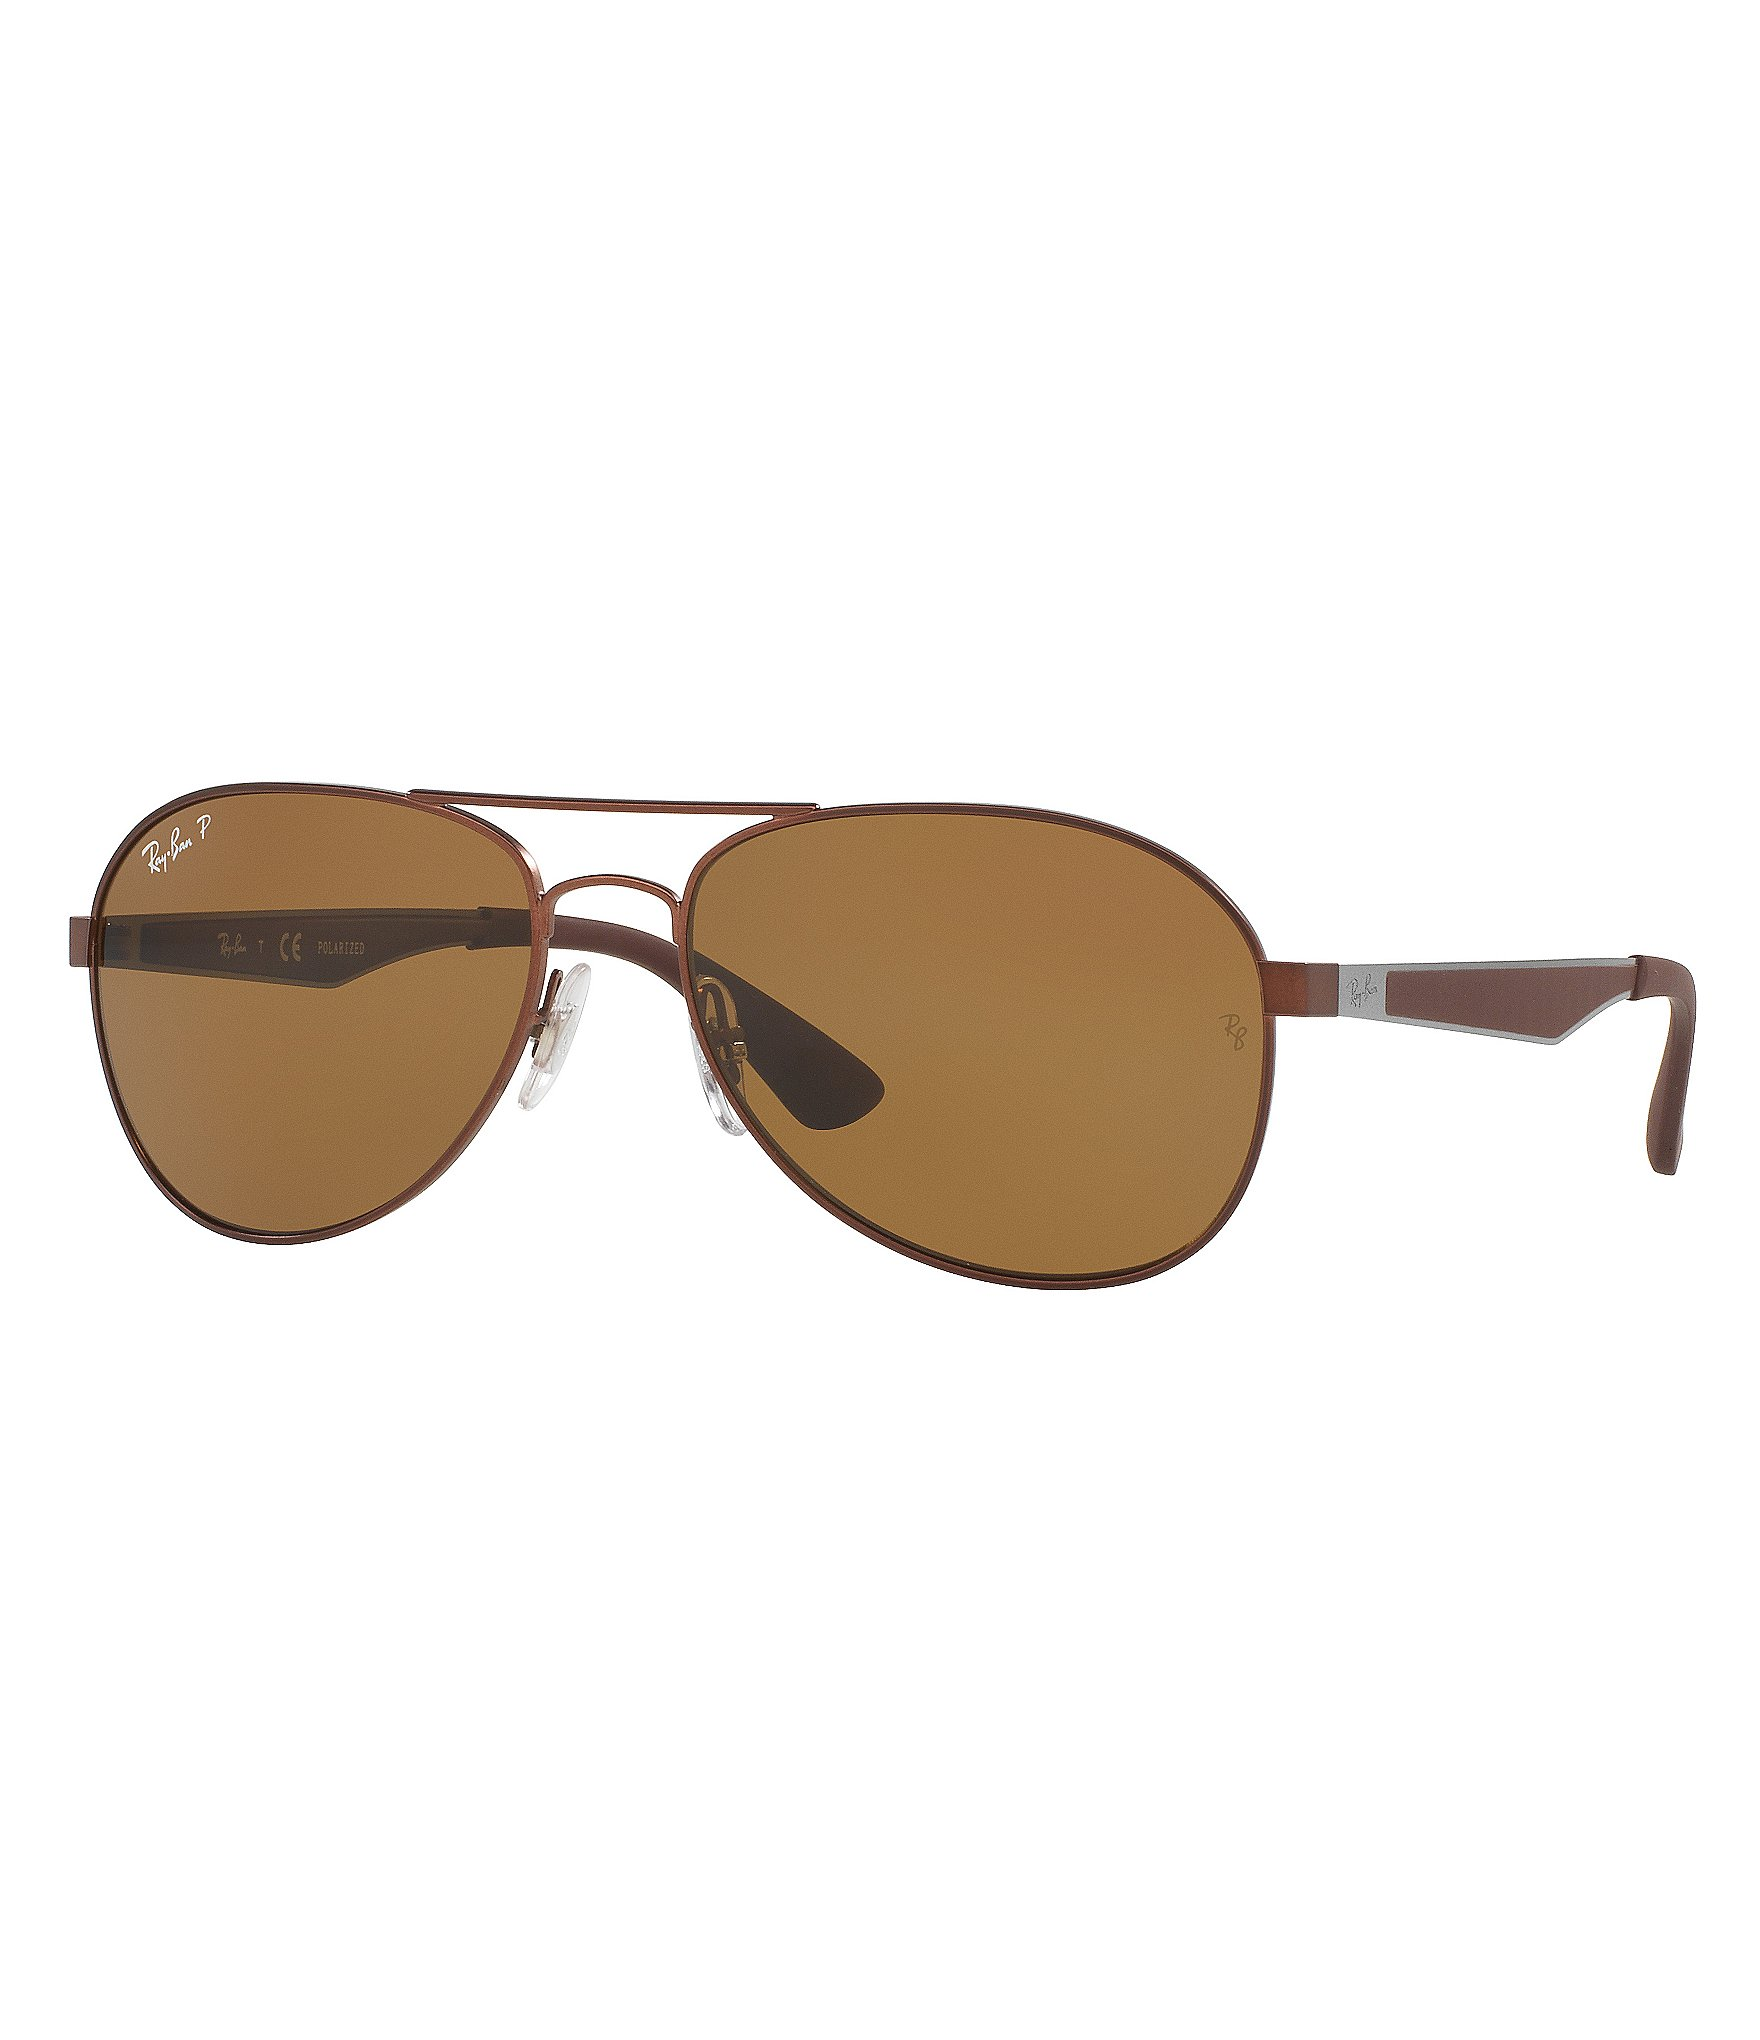 87a416a89b Ray Bands Sunglasses Dillards « Heritage Malta